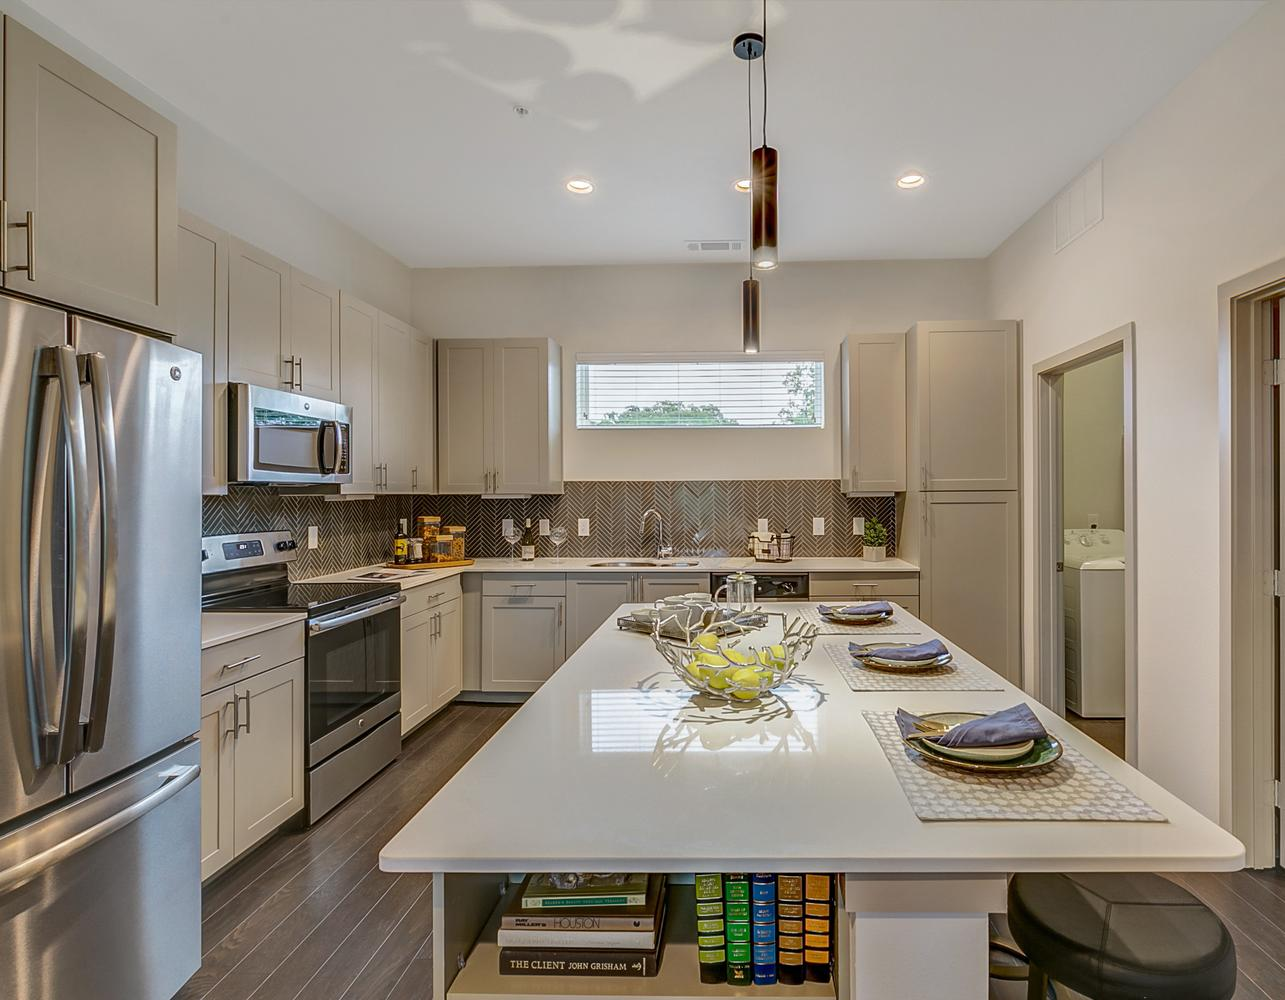 The Scenic at River East | Gables Residential Communities